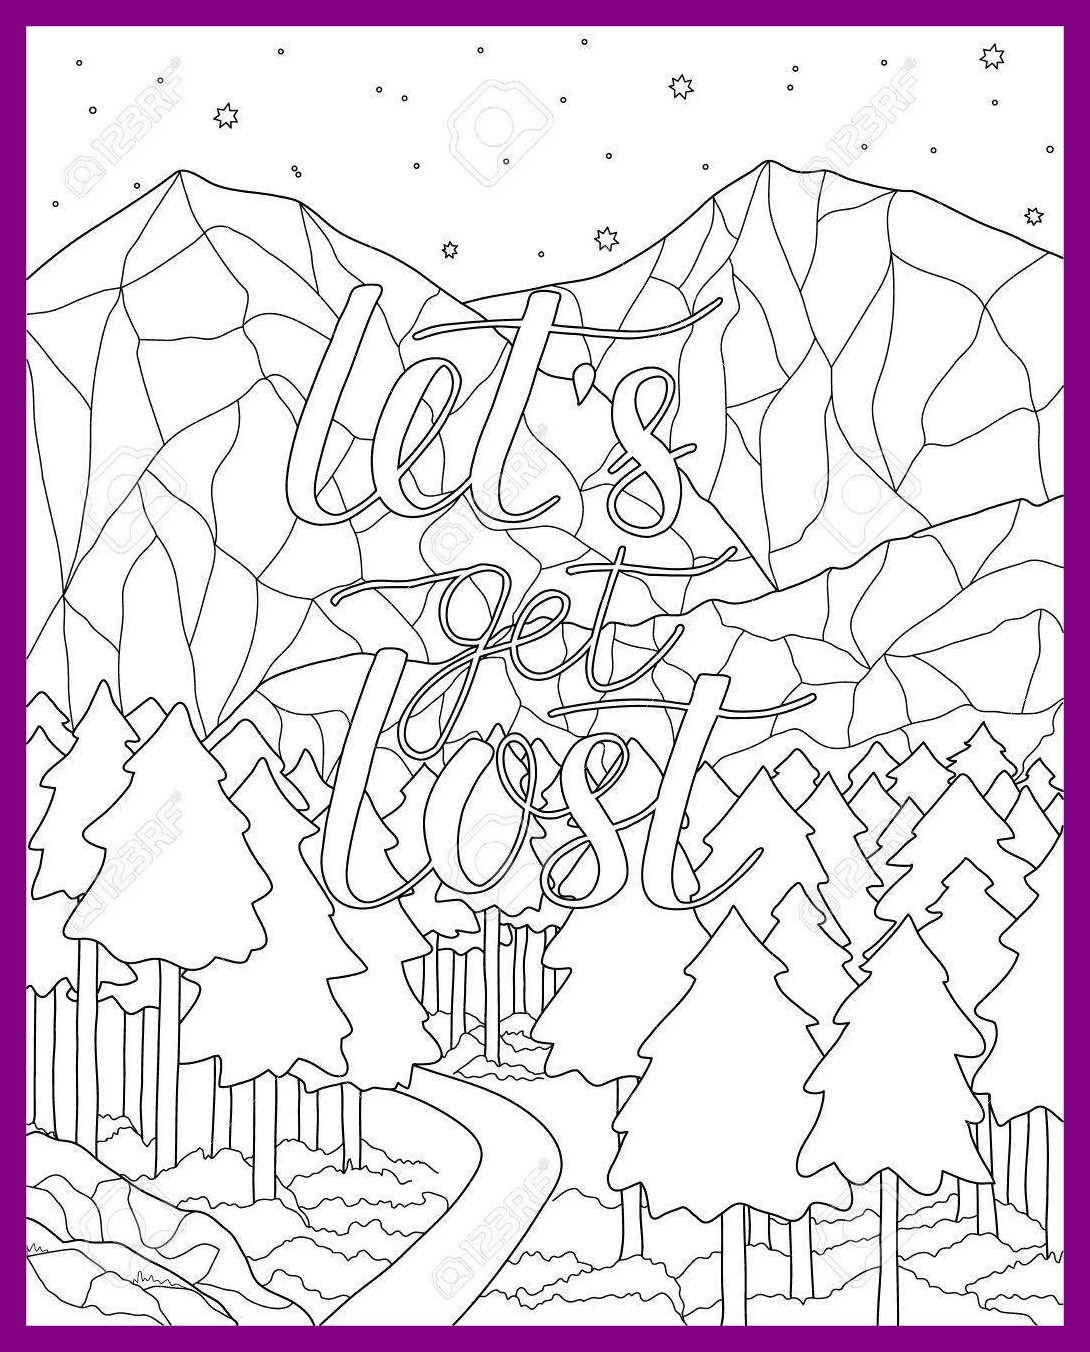 1090x1352 Inspiring Mountain Scenery Adult Antistress Coloring Page